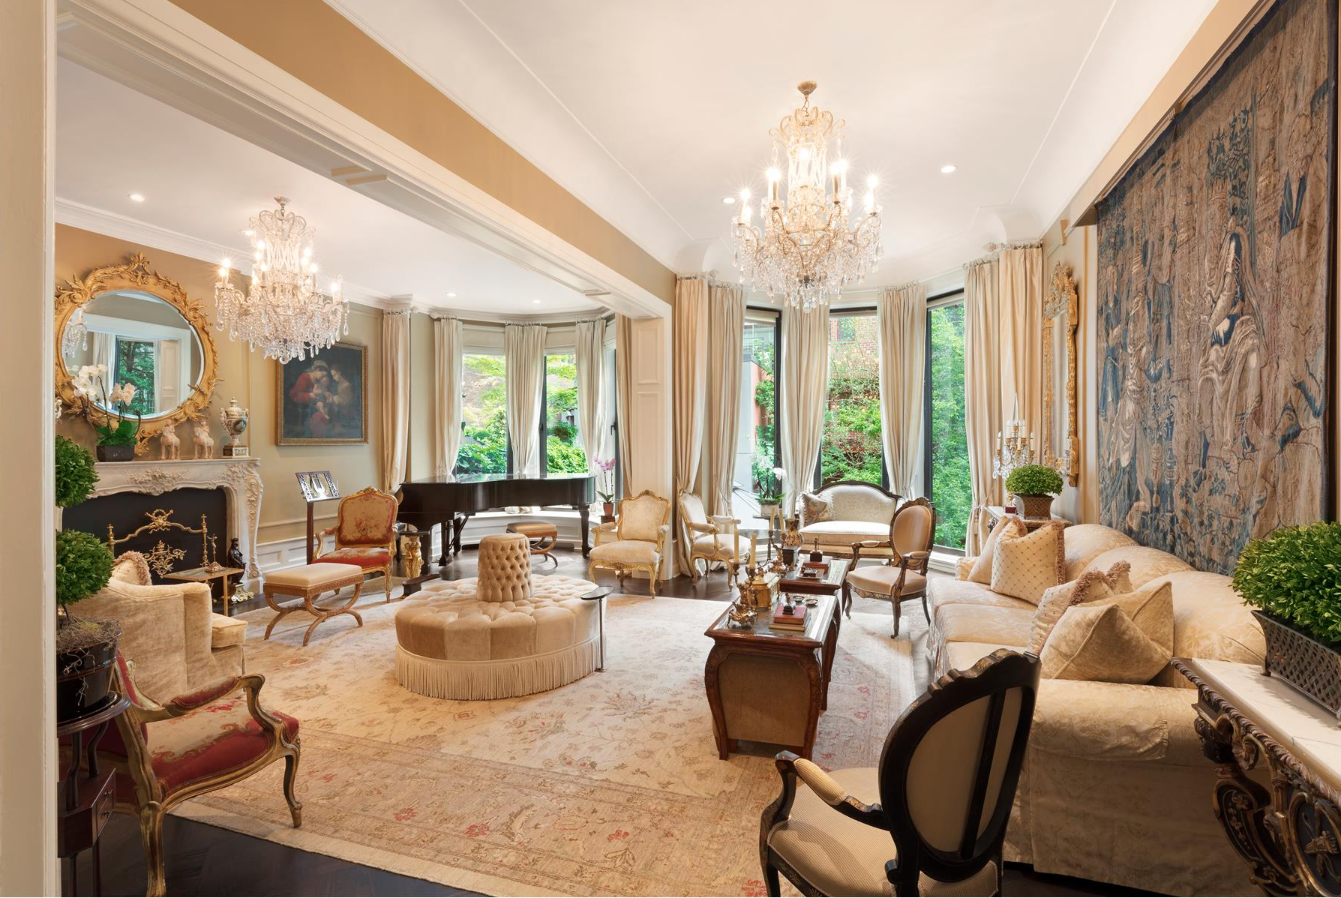 Nyc celebrity homes curbed ny for High end real estate nyc